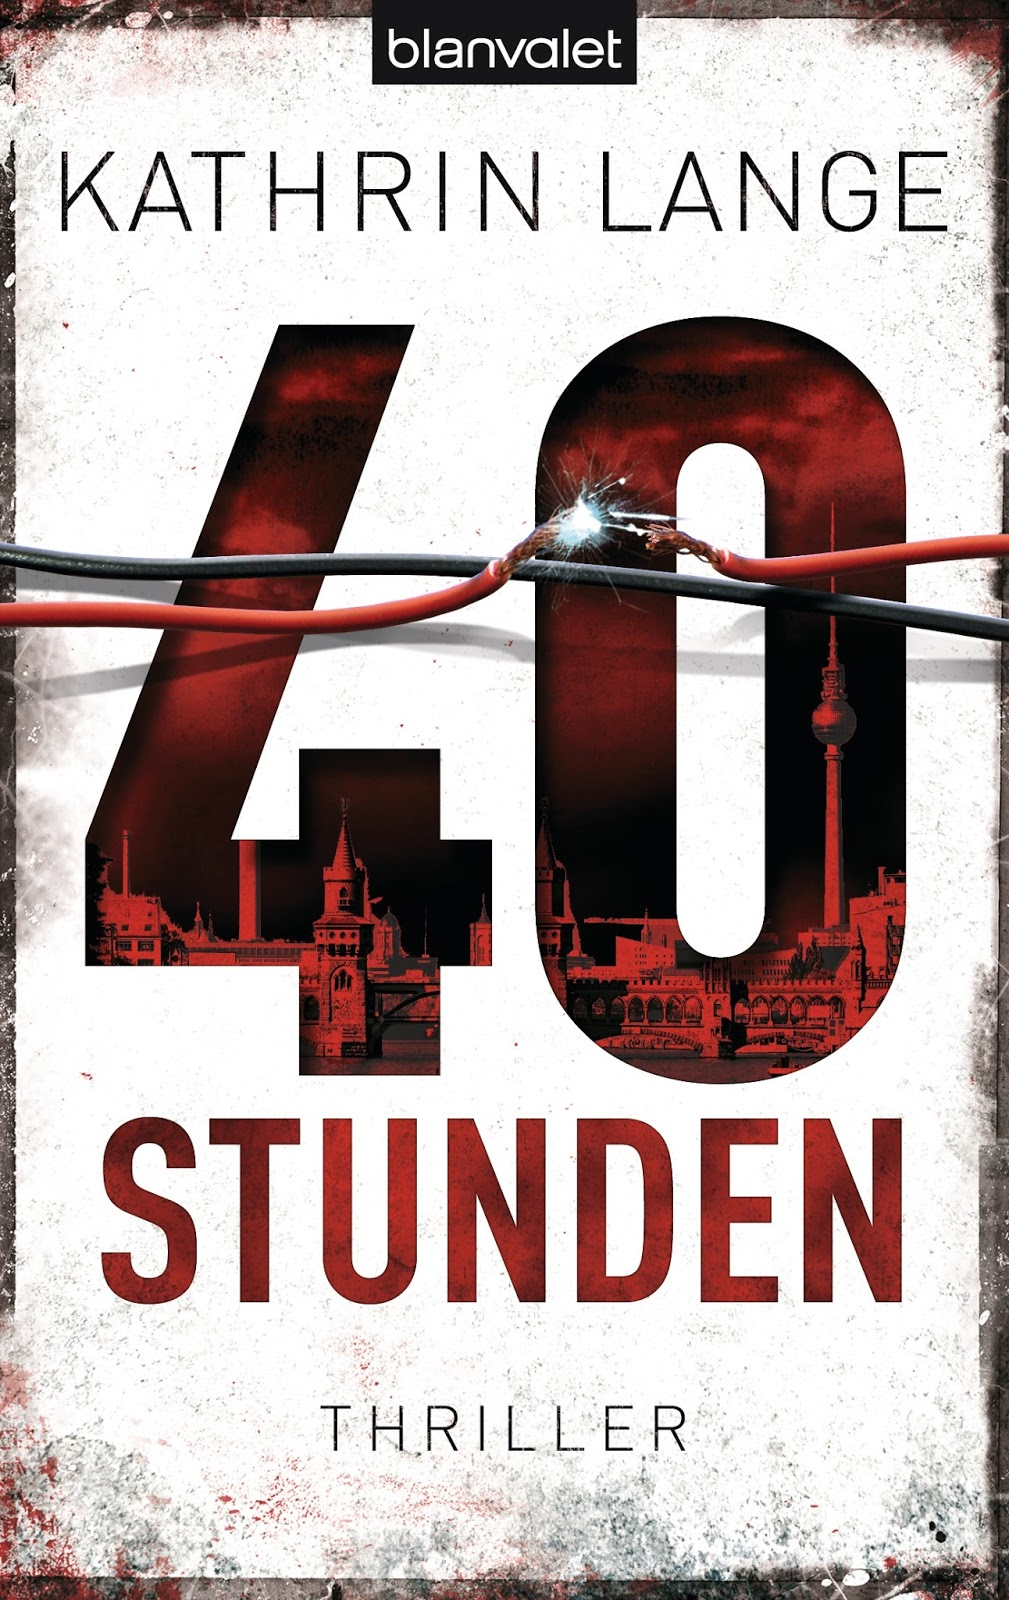 http://nothingbutn9erz.blogspot.co.at/2015/03/40-stunden-kathrin-lange-review.html